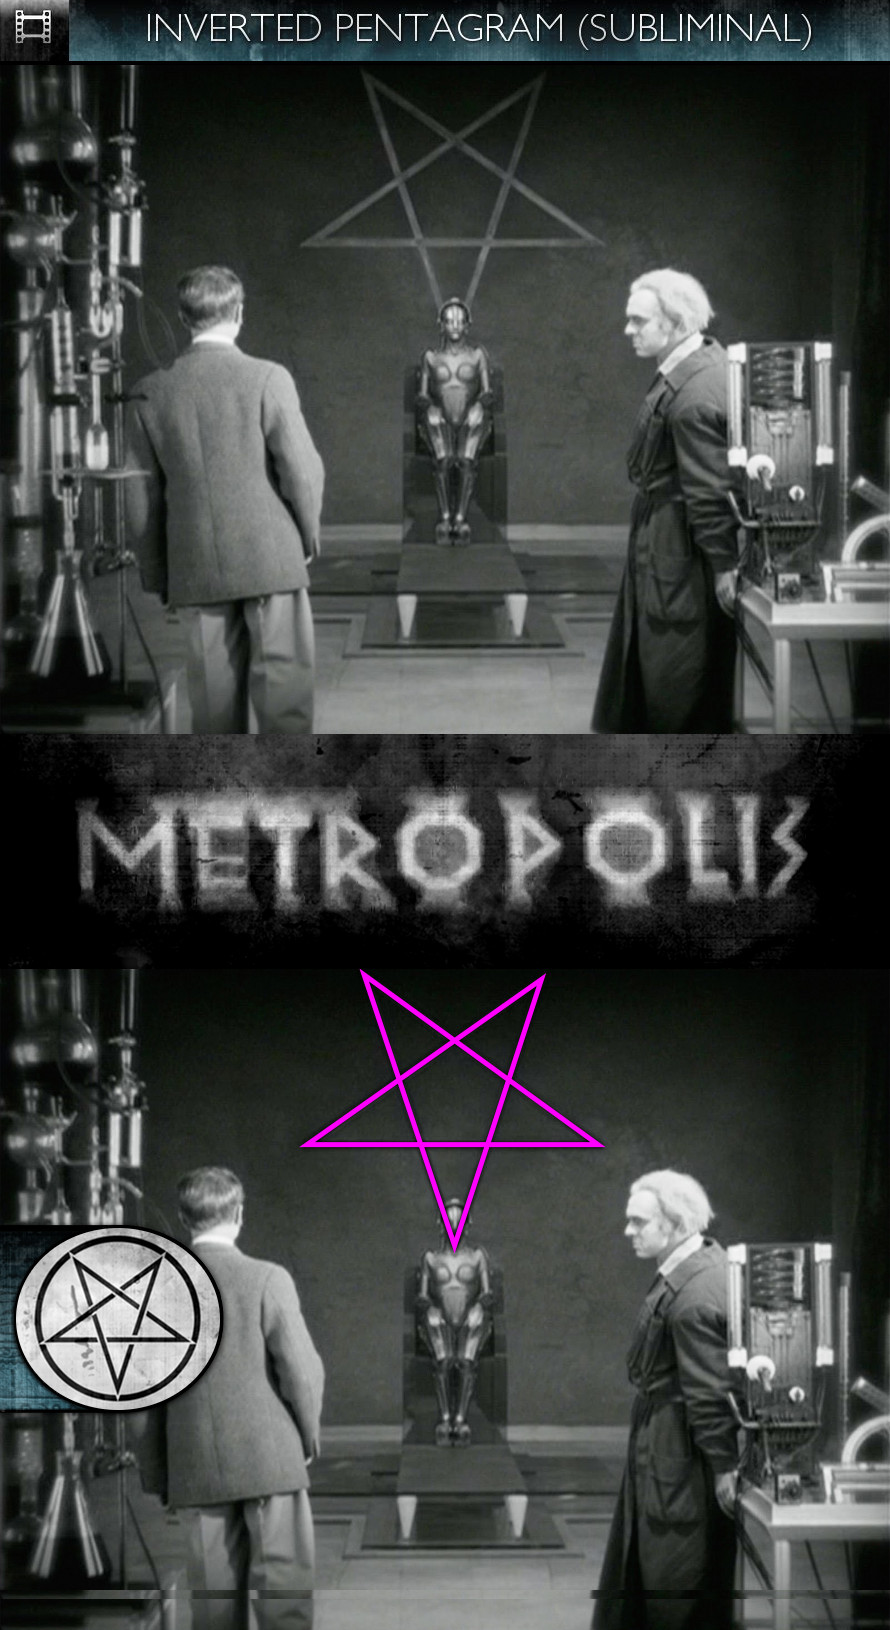 Metropolis (1927) - Inverted Pentagram - Subliminal